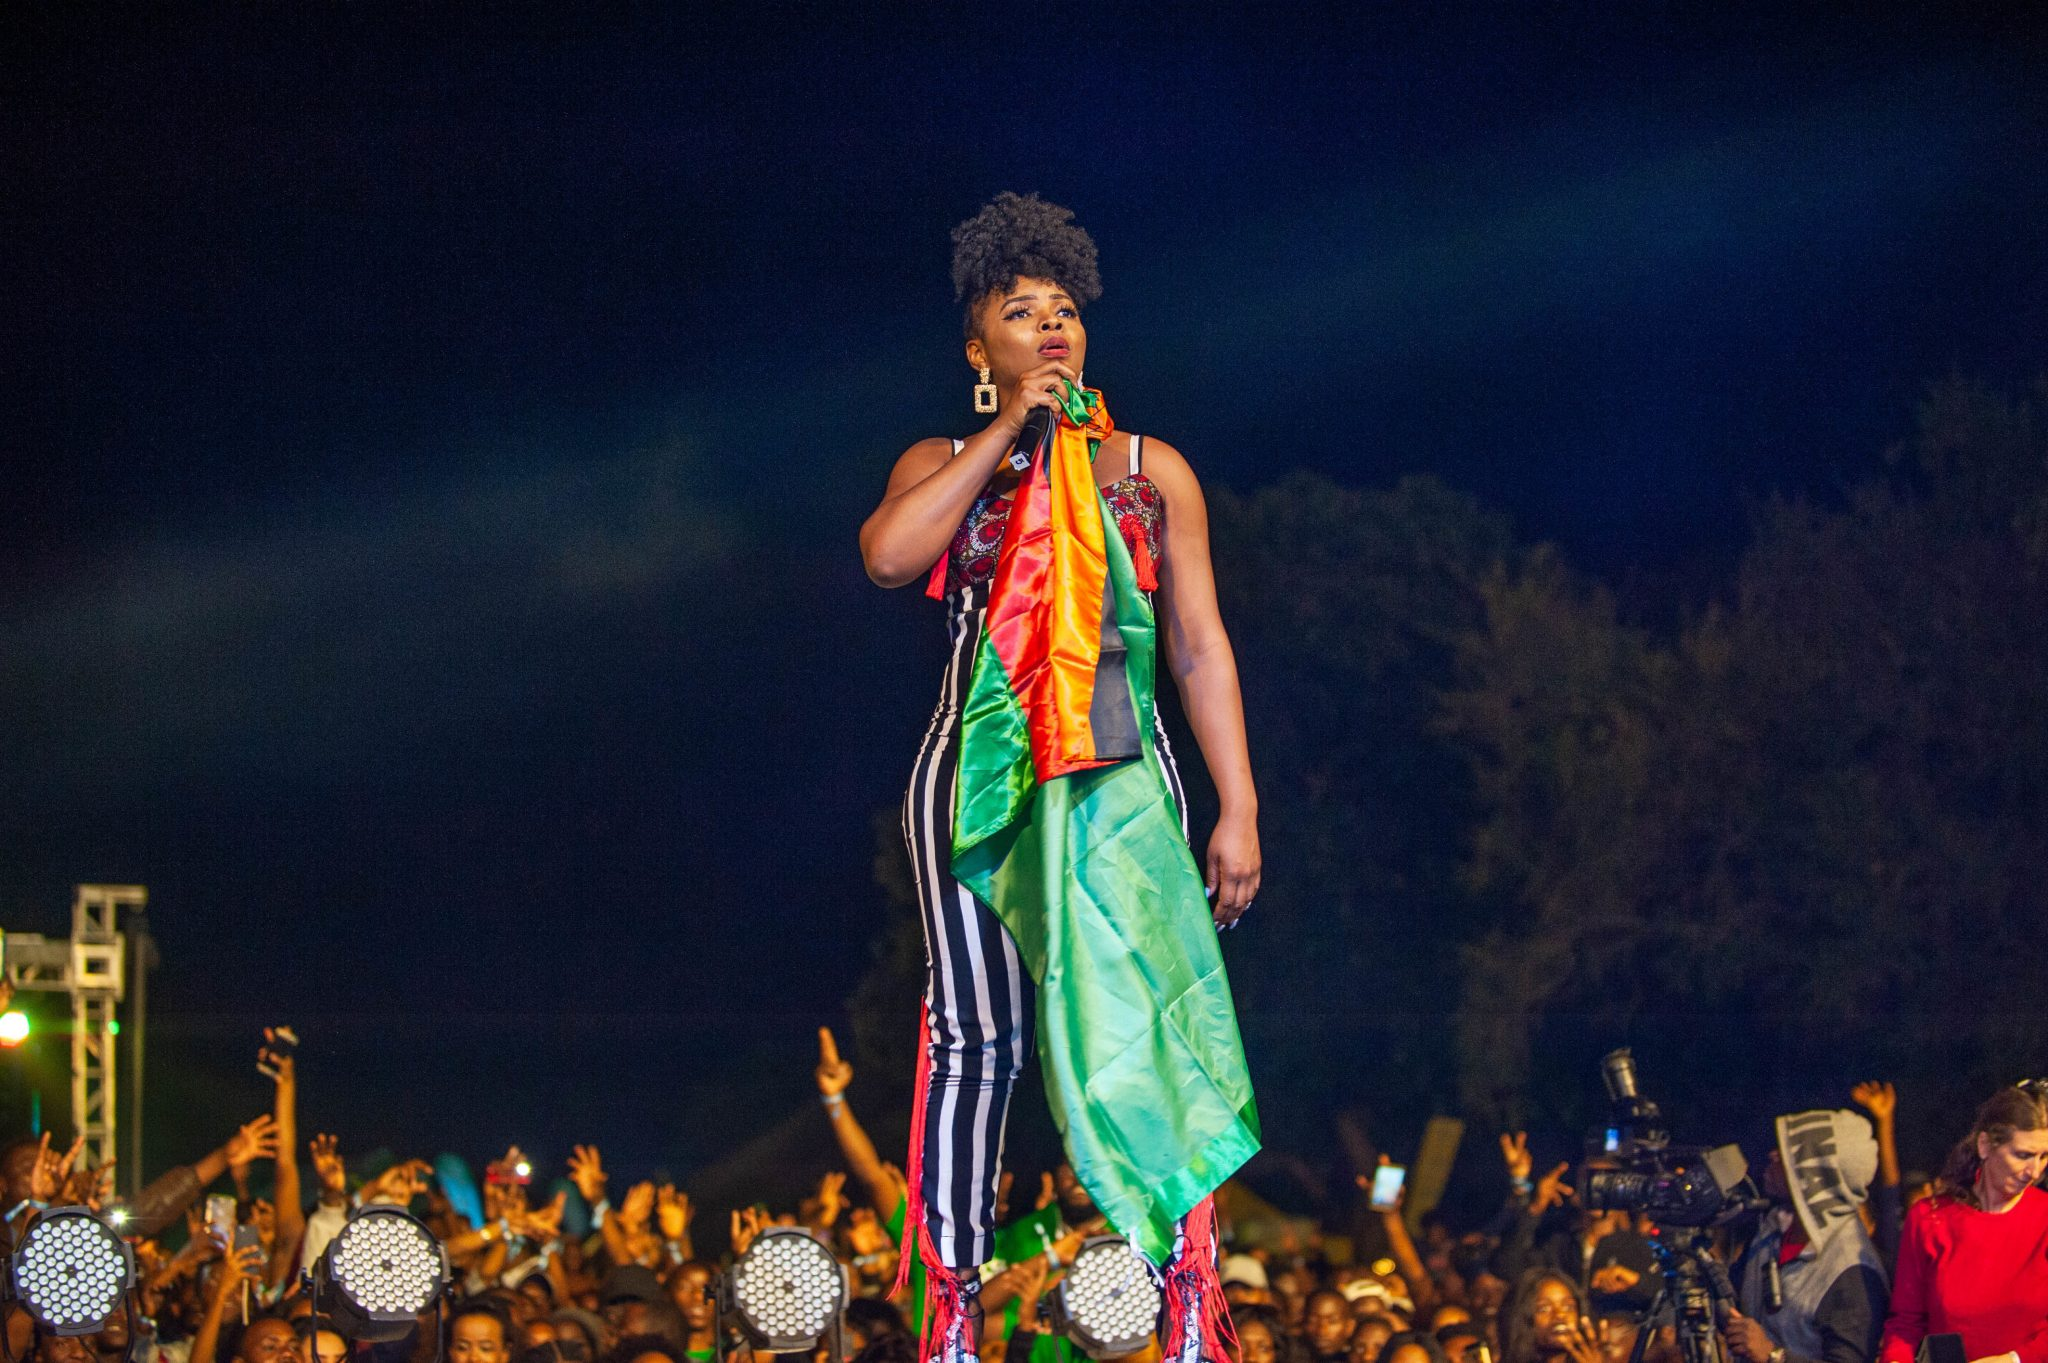 Yemi Alade Headlines 'Mosi Day Of Thunder' In Zambia With